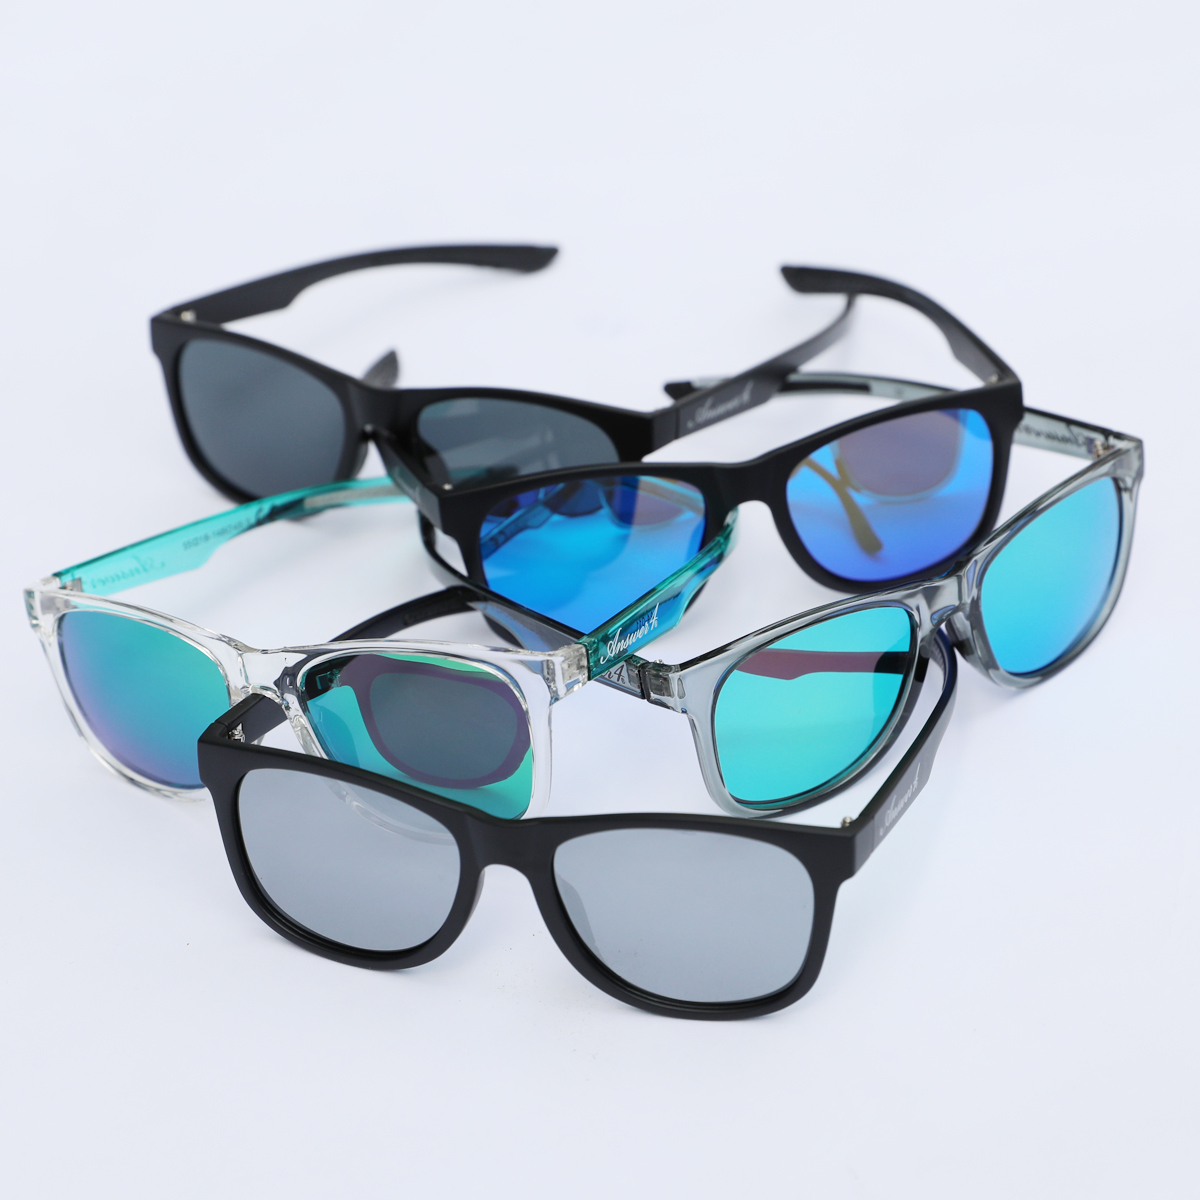 Sunglasses sg_1